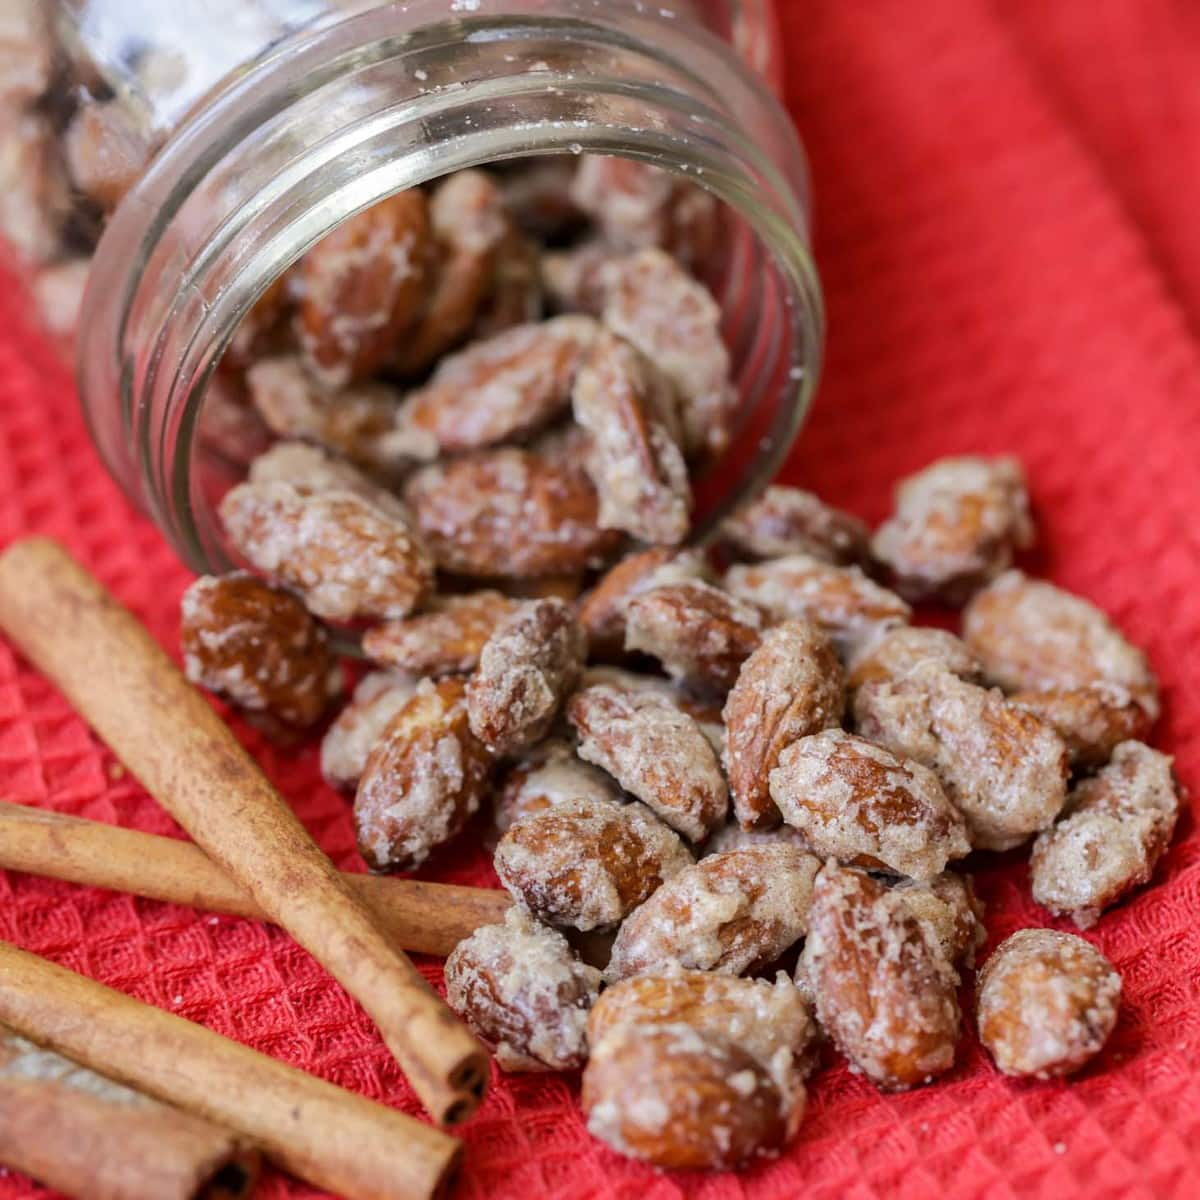 Candied almonds spilling out of a mason jar